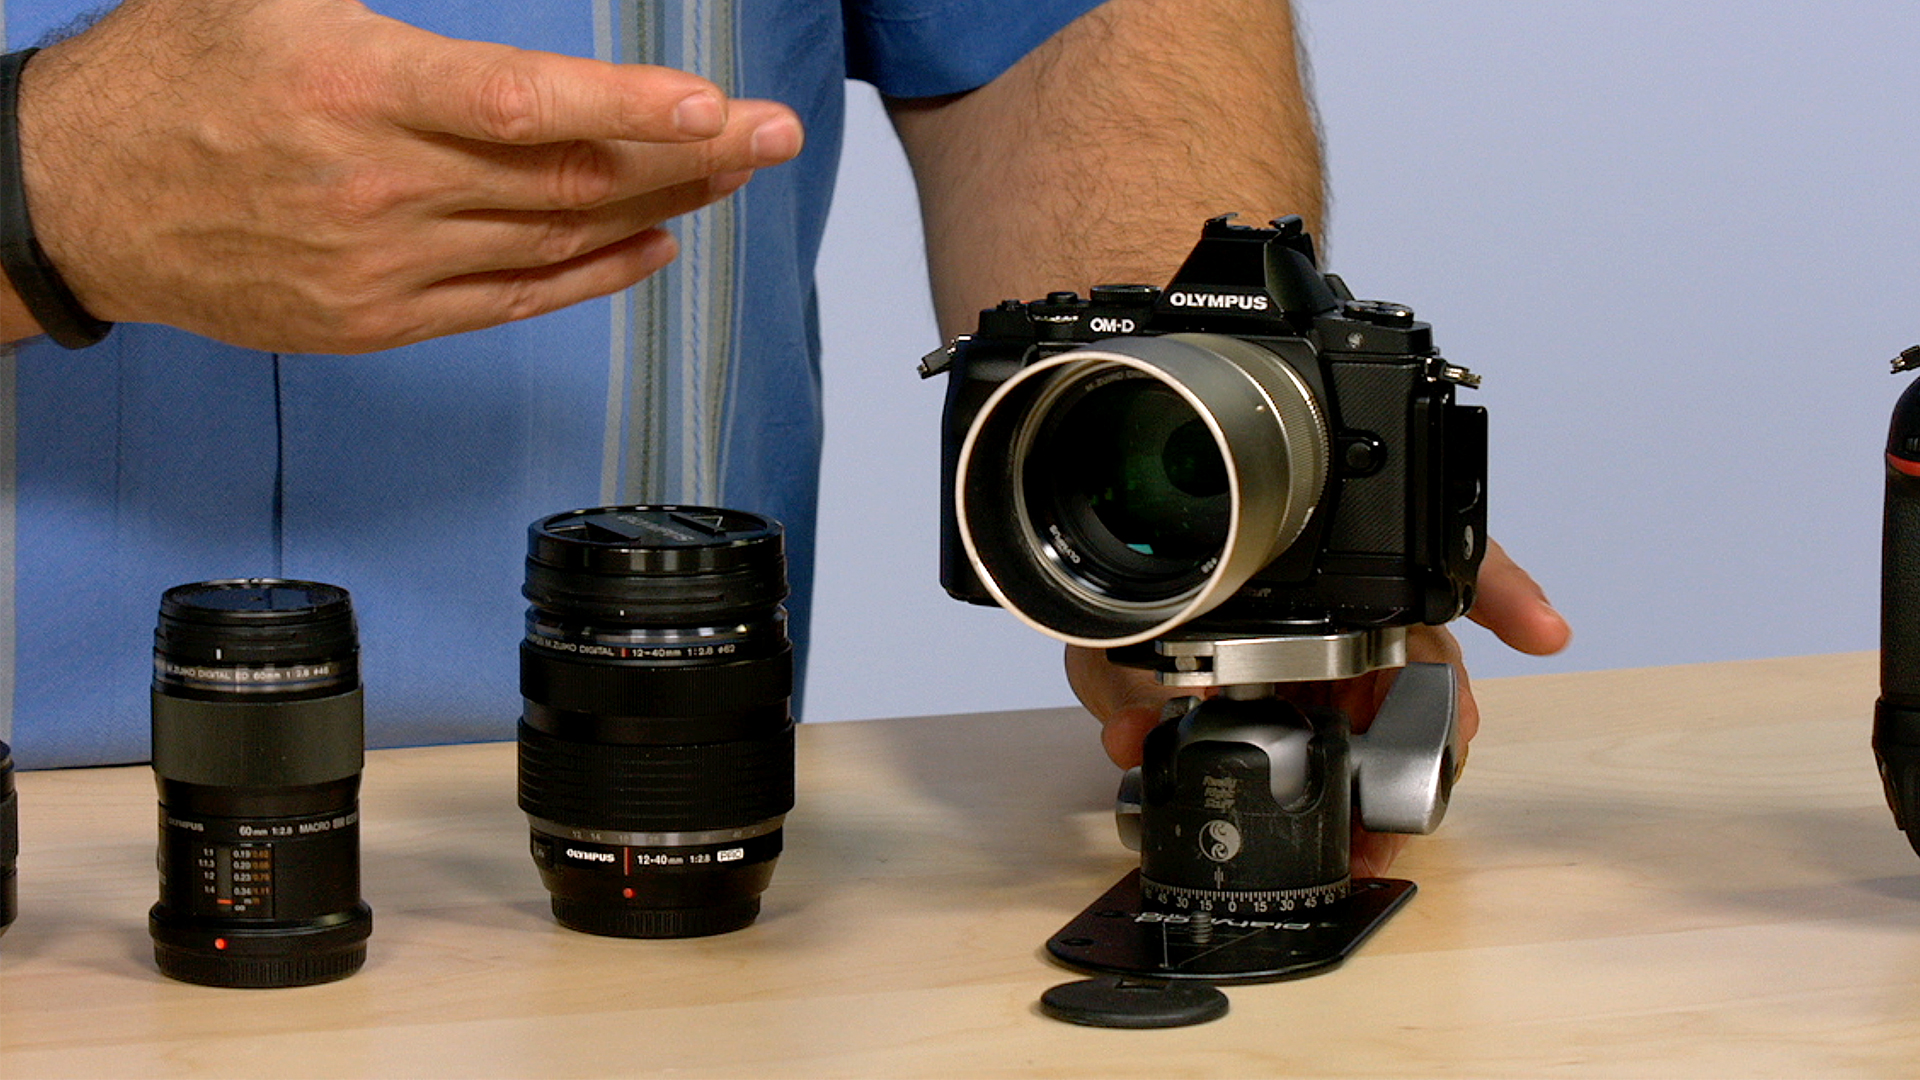 Learning to Use Mirrorless Cameras